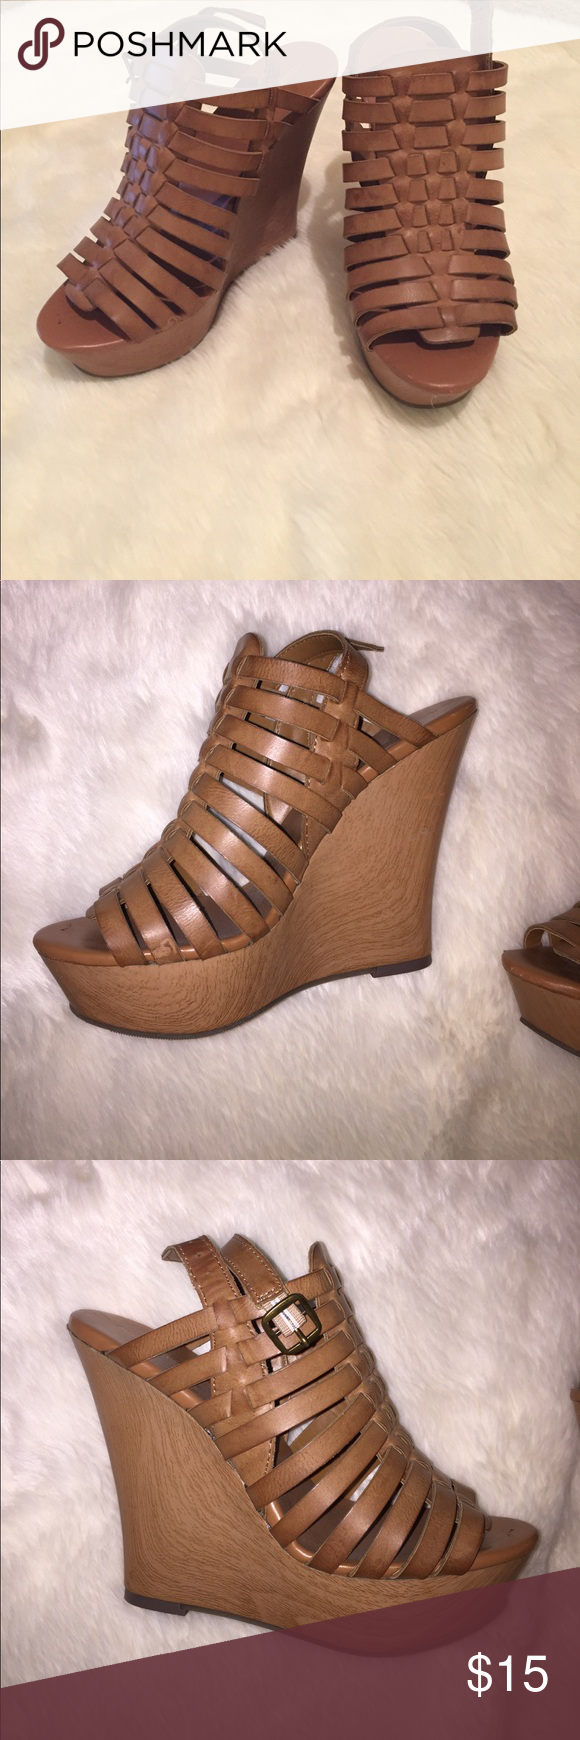 Beige strappy wedges 3 inch heel beige wedges with a wood